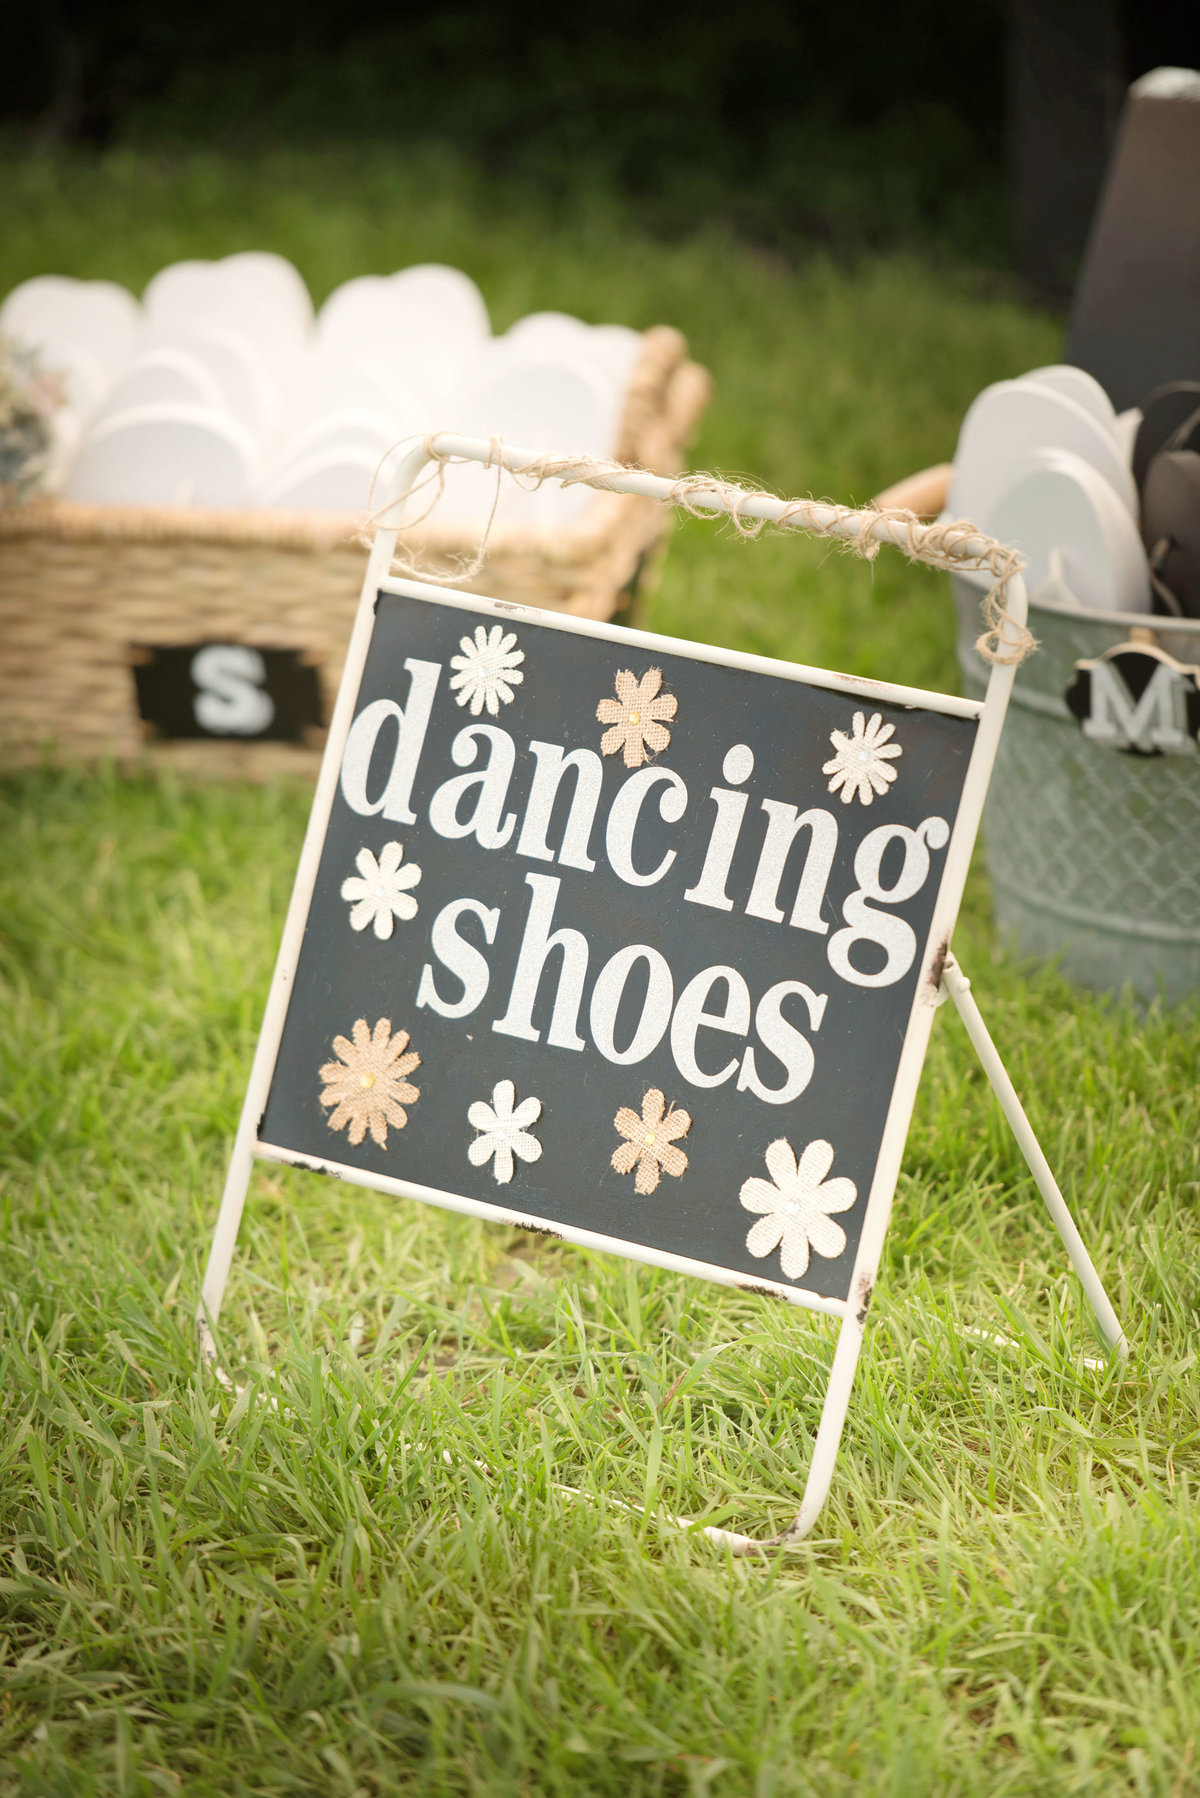 Dancing shoes sign at a tented wedding